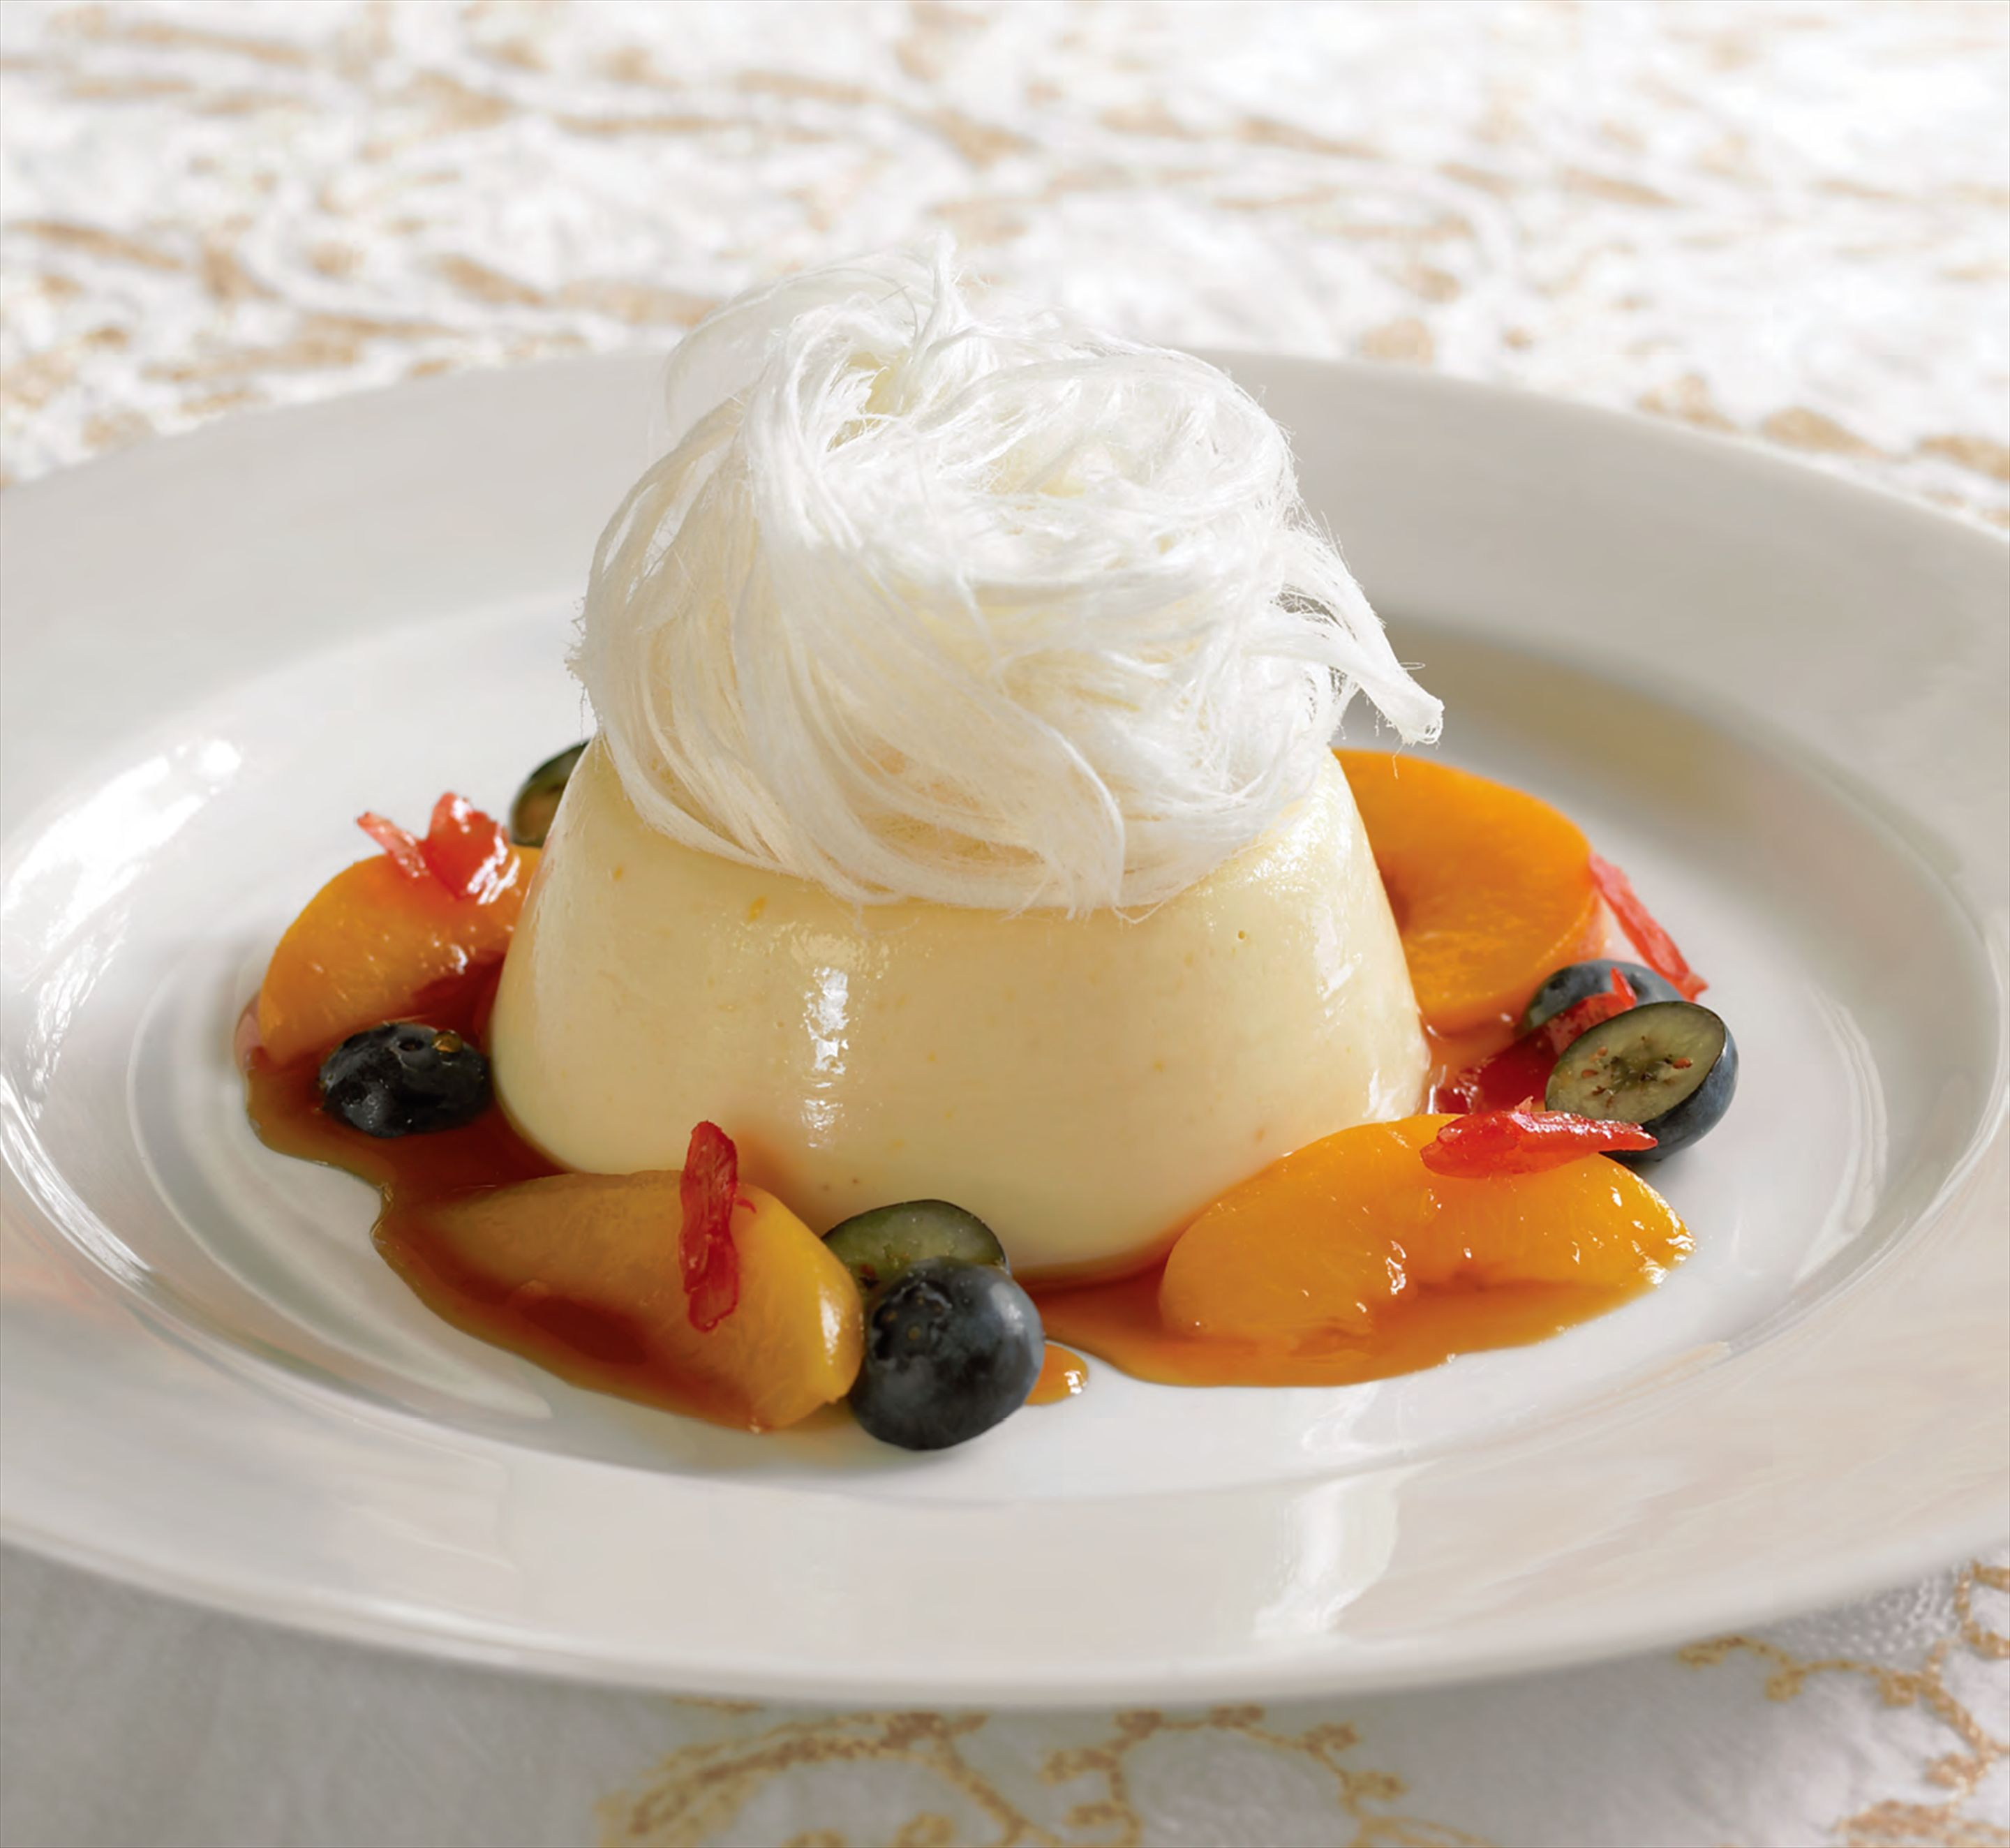 Alison's peach–yoghurt panna cotta with orange blossom–peach caramel